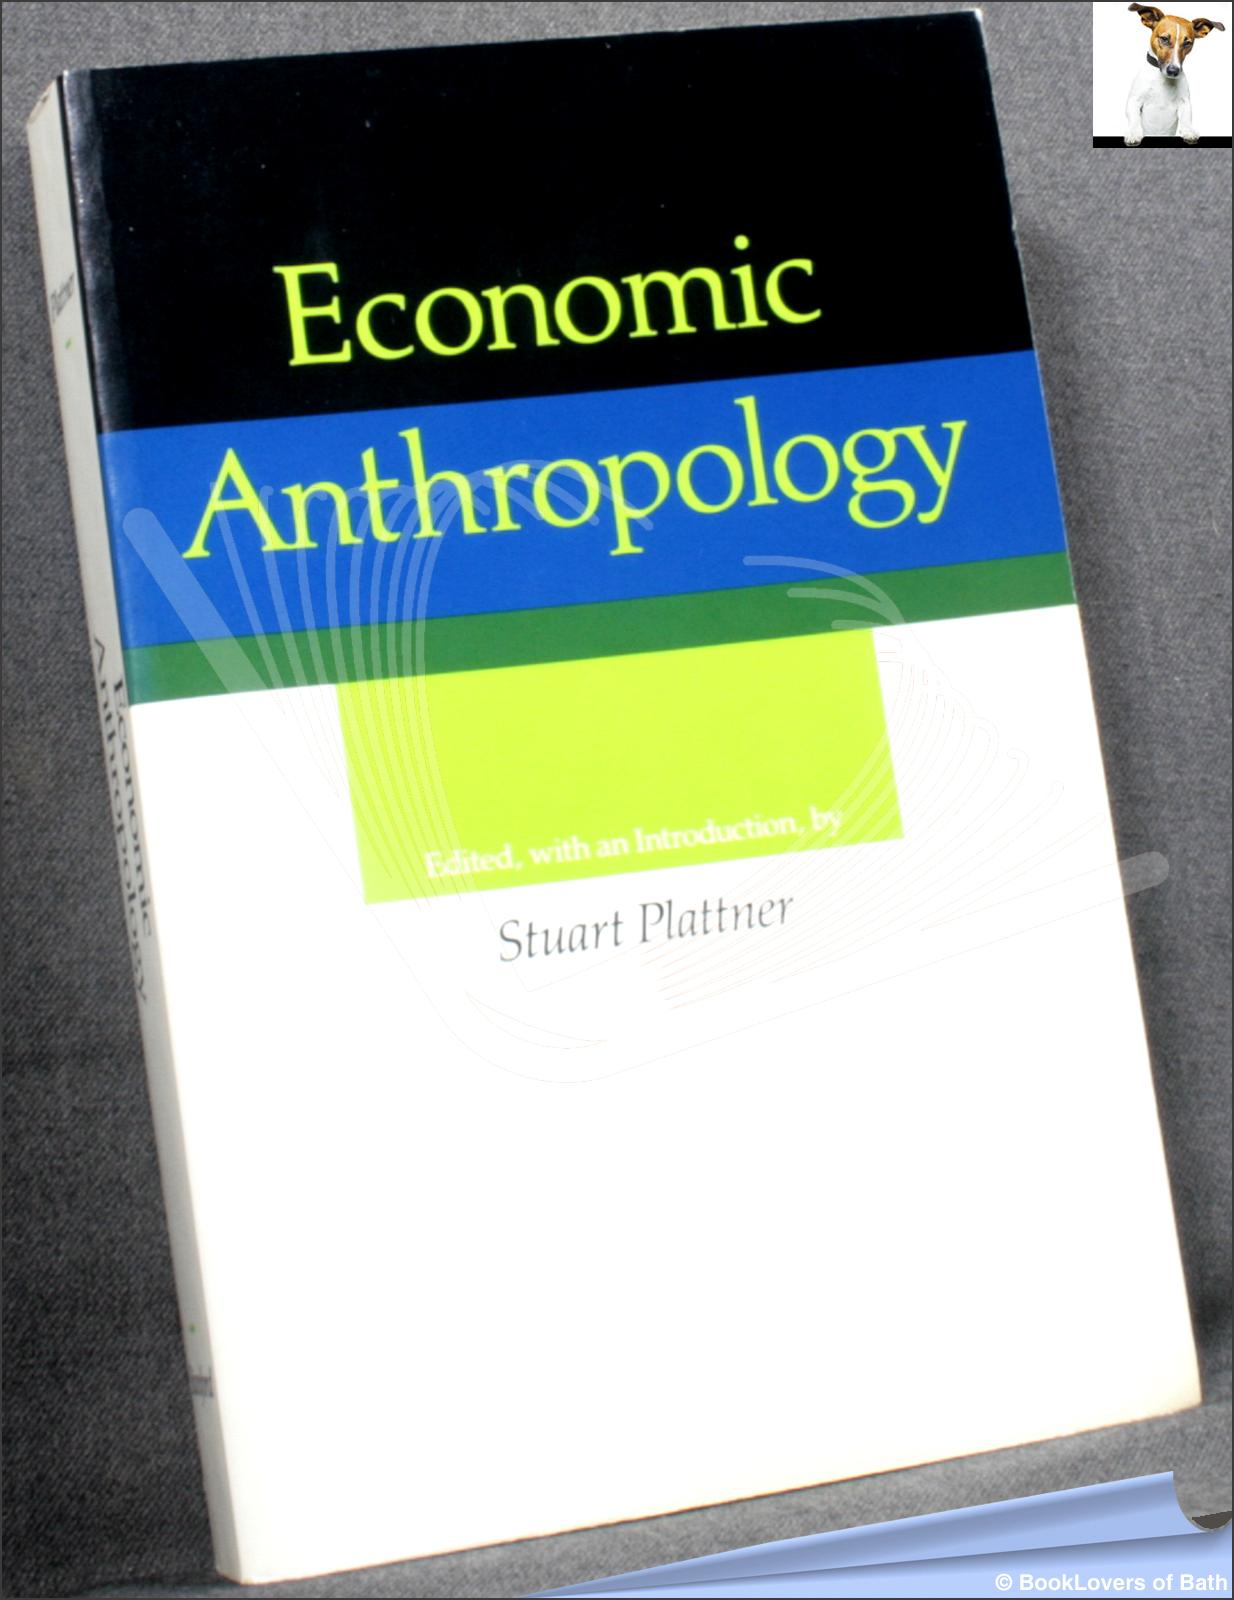 Economic Anthropology - Stuart Plattner